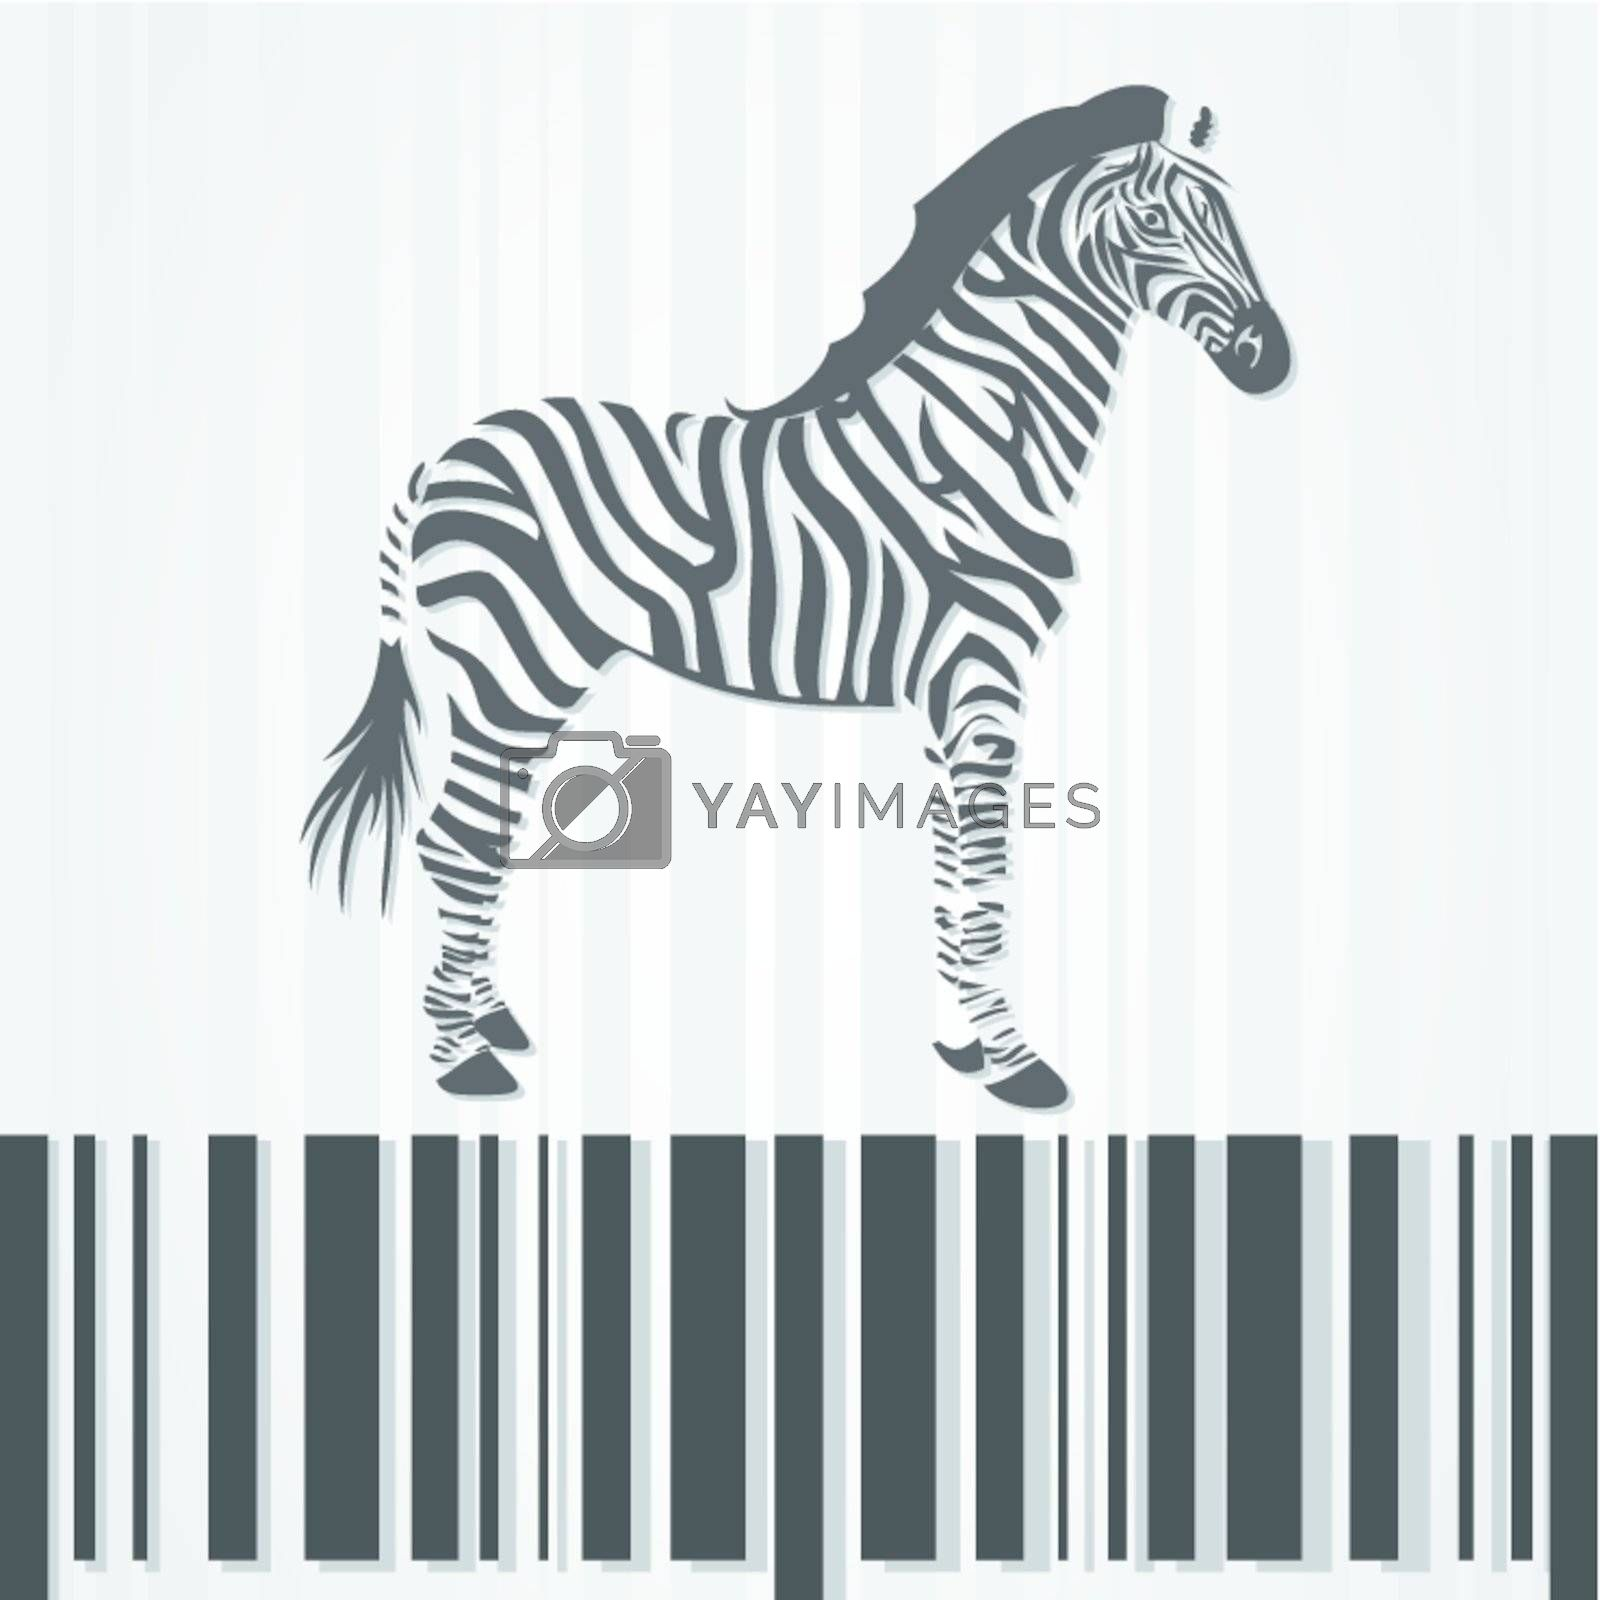 The horse a zebra costs on a stroke a code. A vector illustration